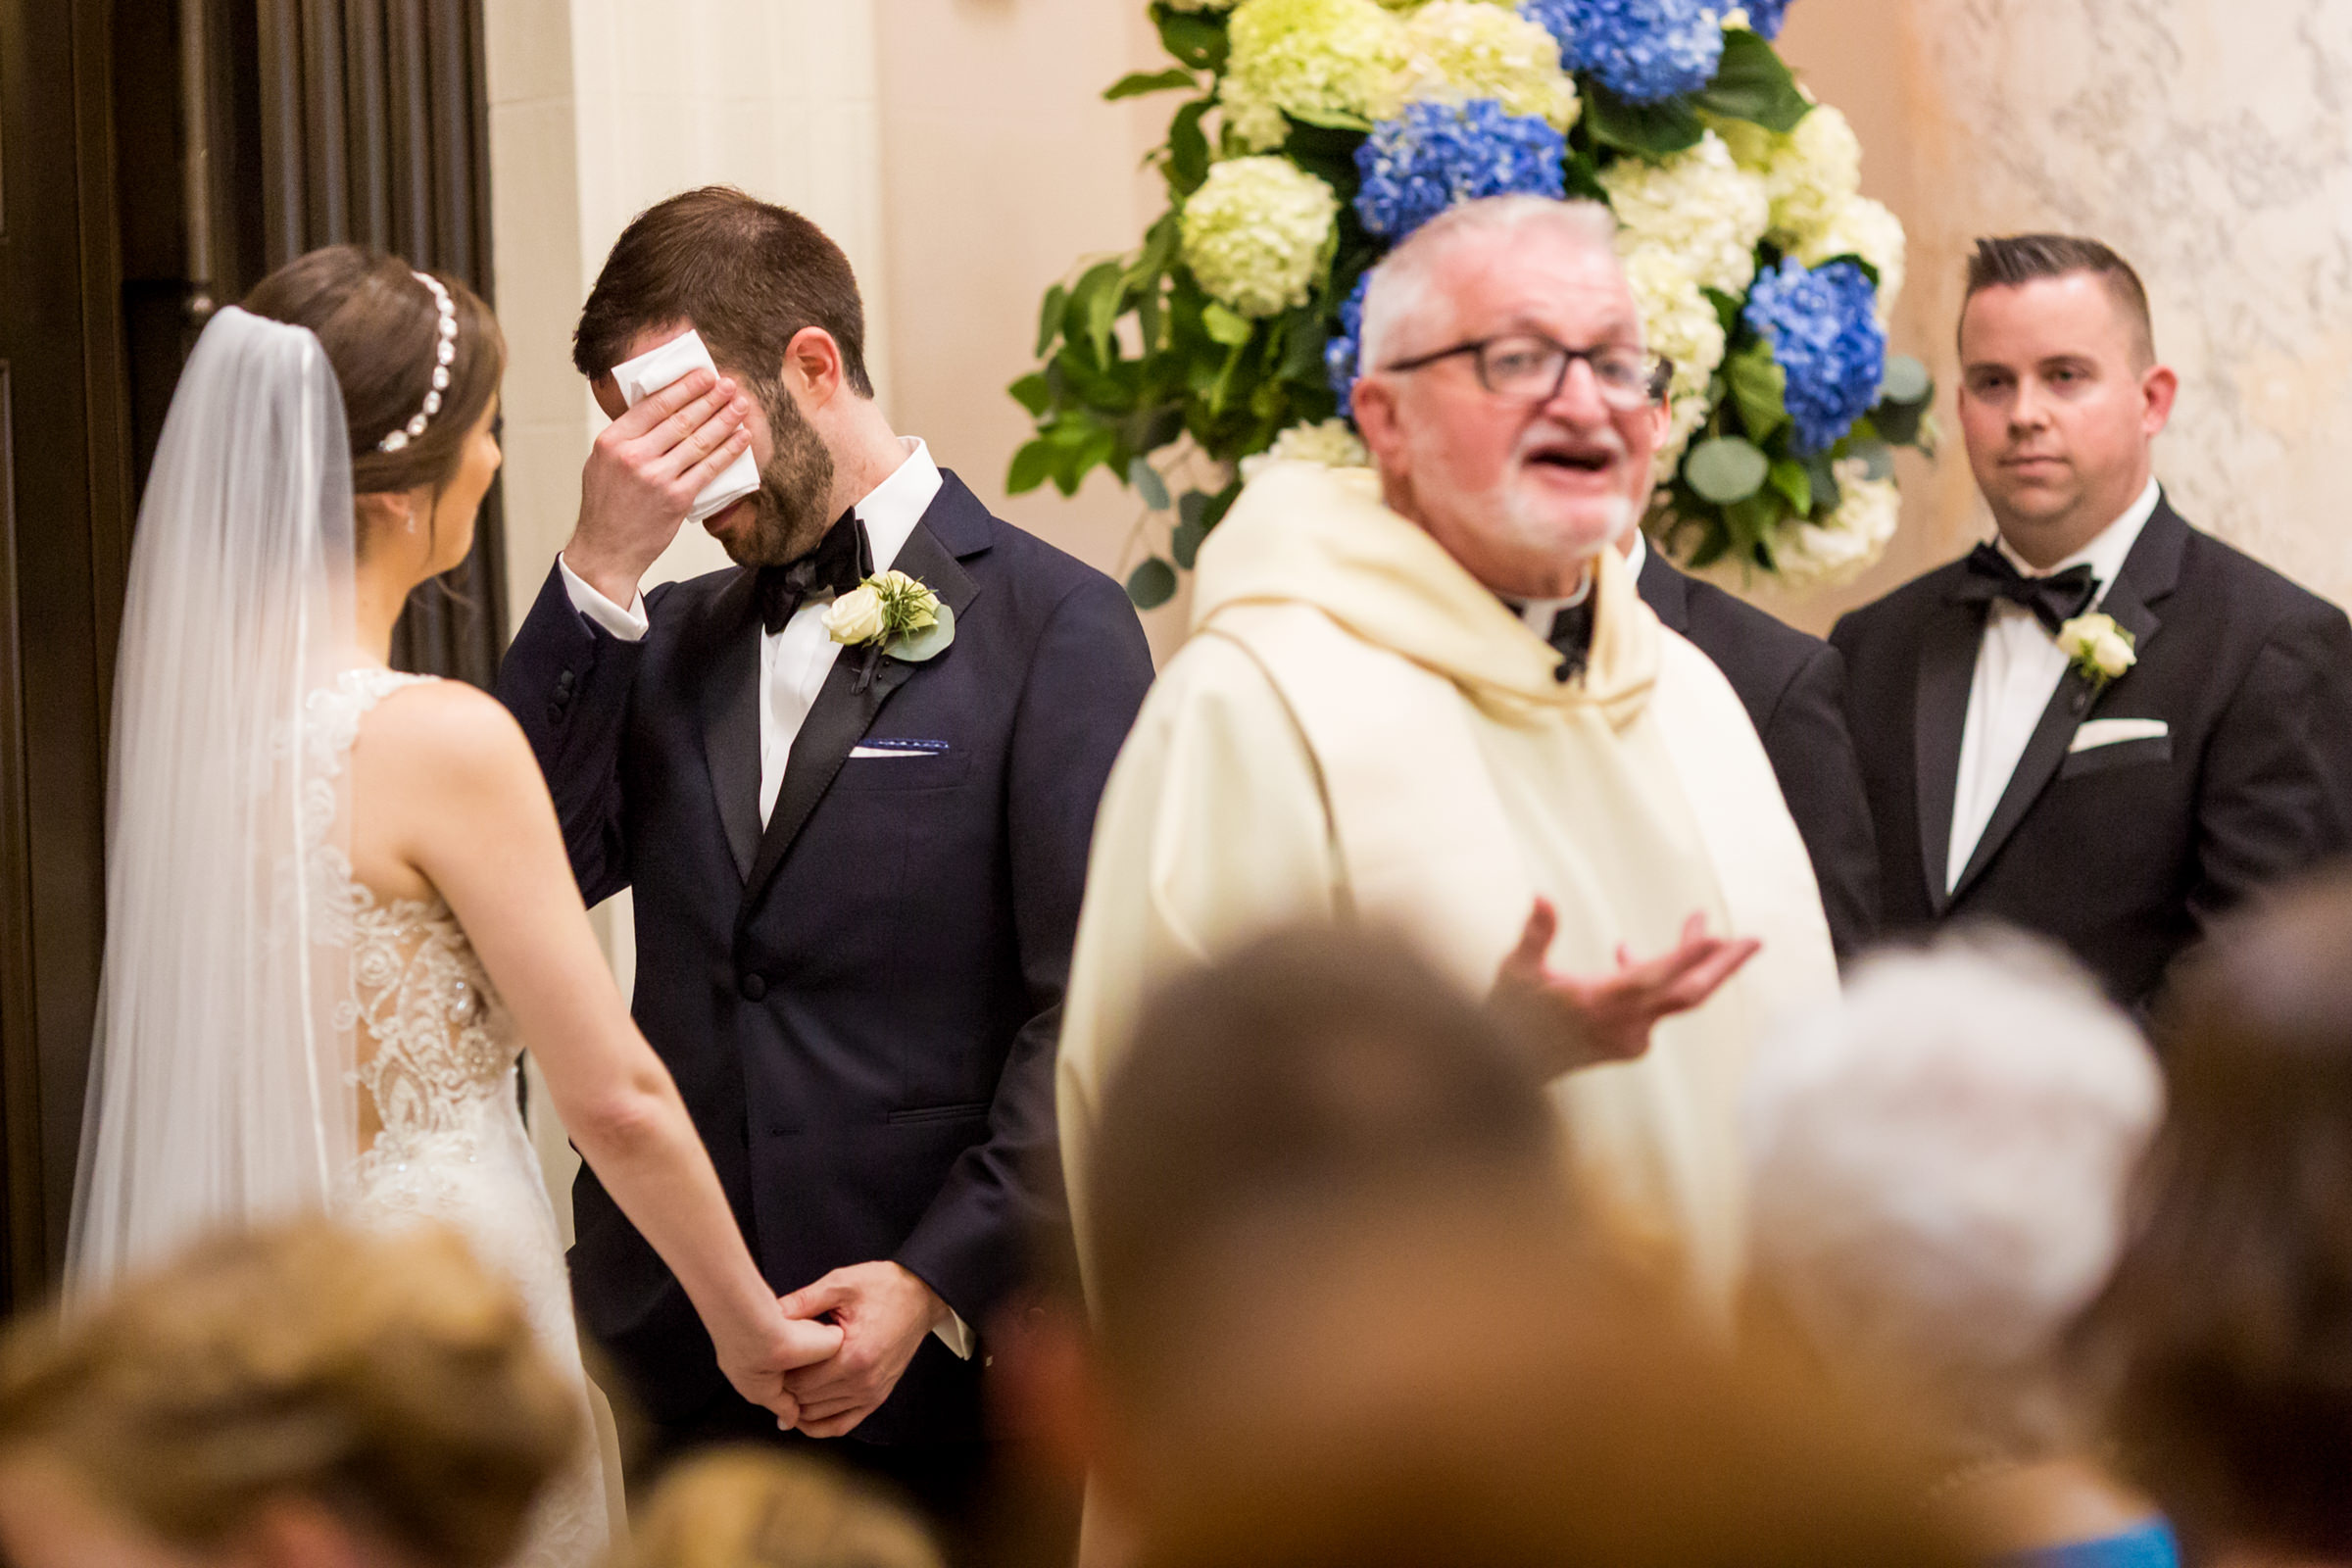 Groom wiping his brow with bride and officiant - photo by Procopio Photography